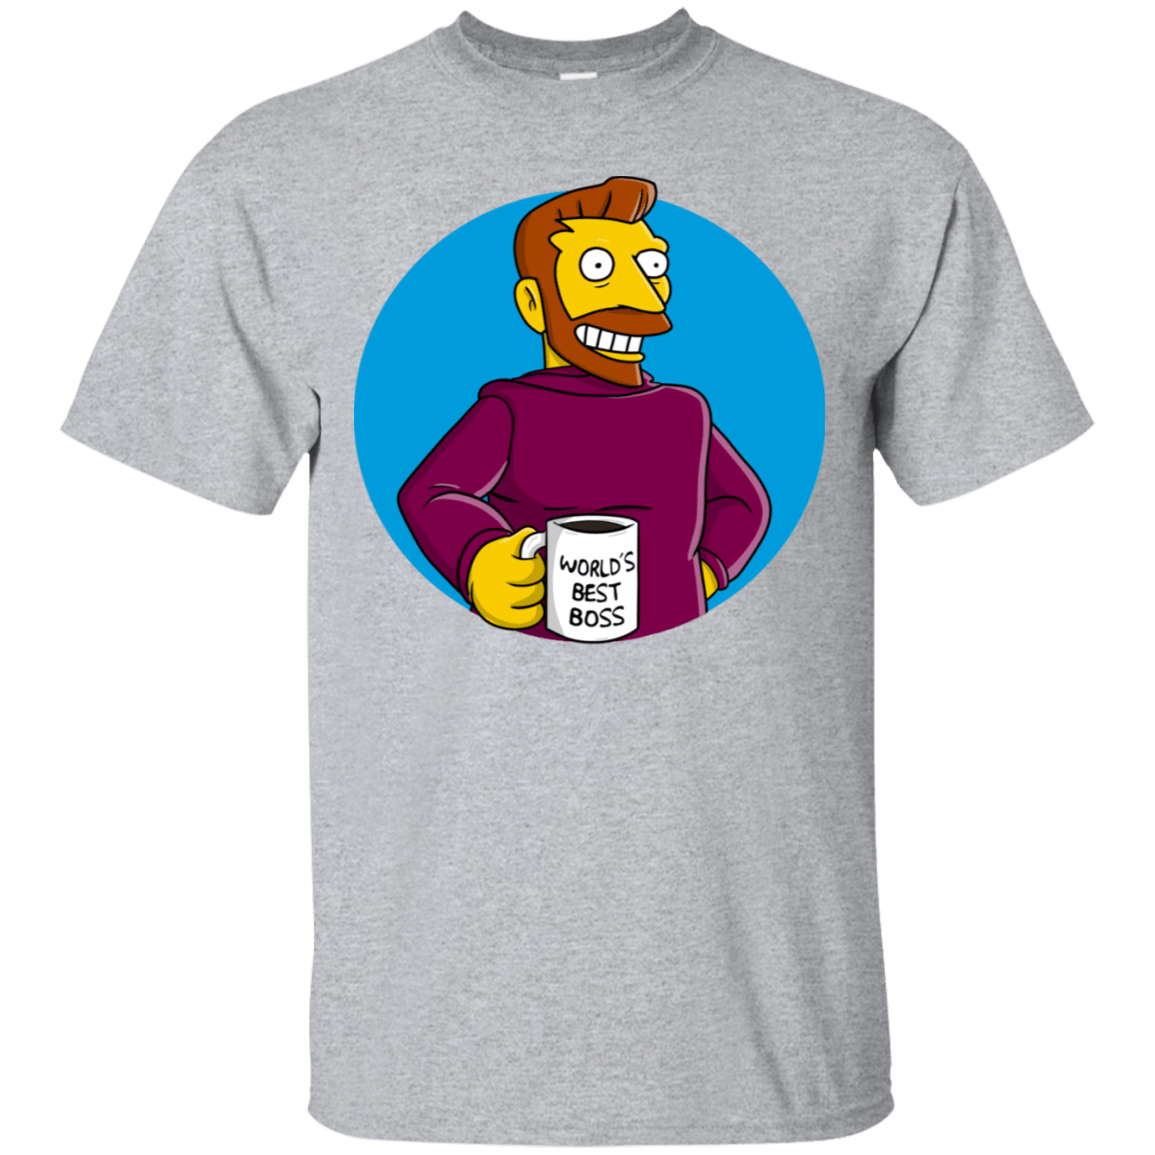 The Best Boss T-Shirt